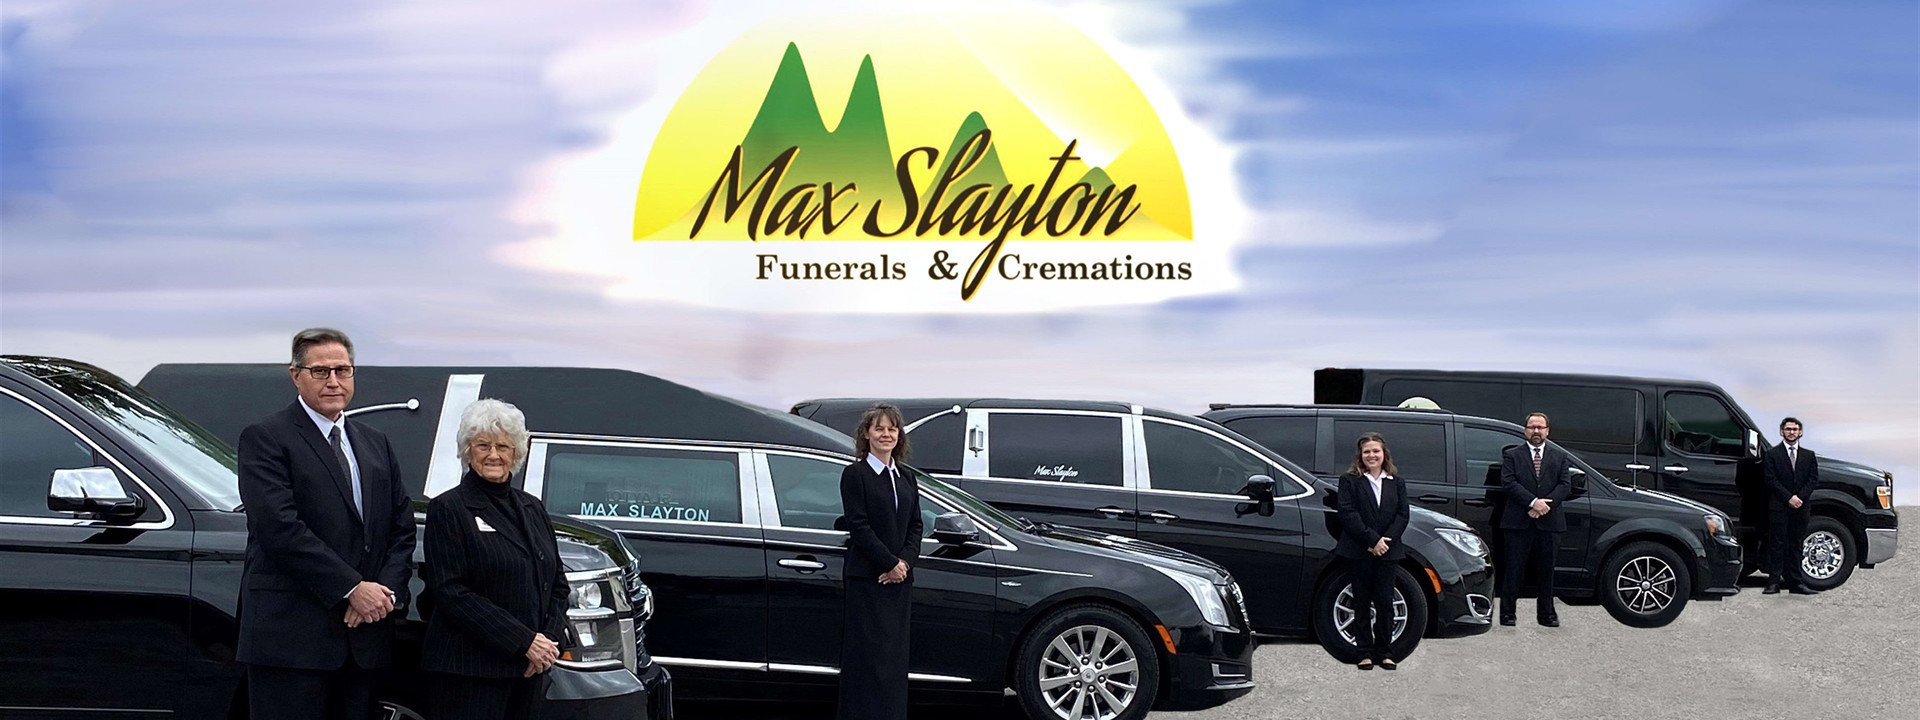 About Us | Max Slayton Funerals and Cremations